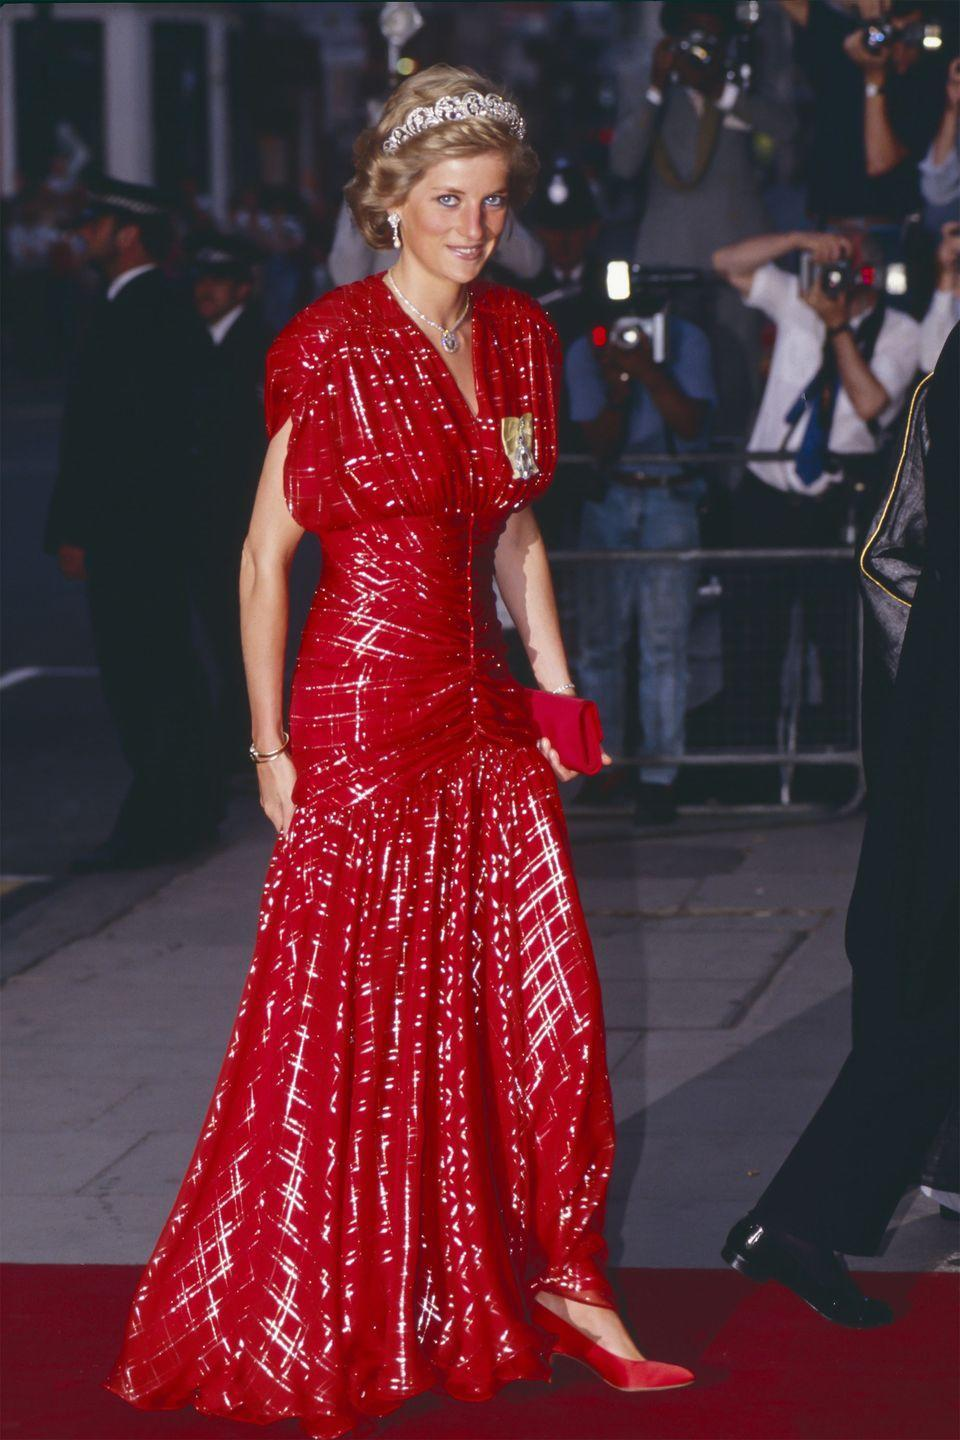 <p>In a red gown with matching clutch and shoes arriving at Claridge's Hotel in London. </p>